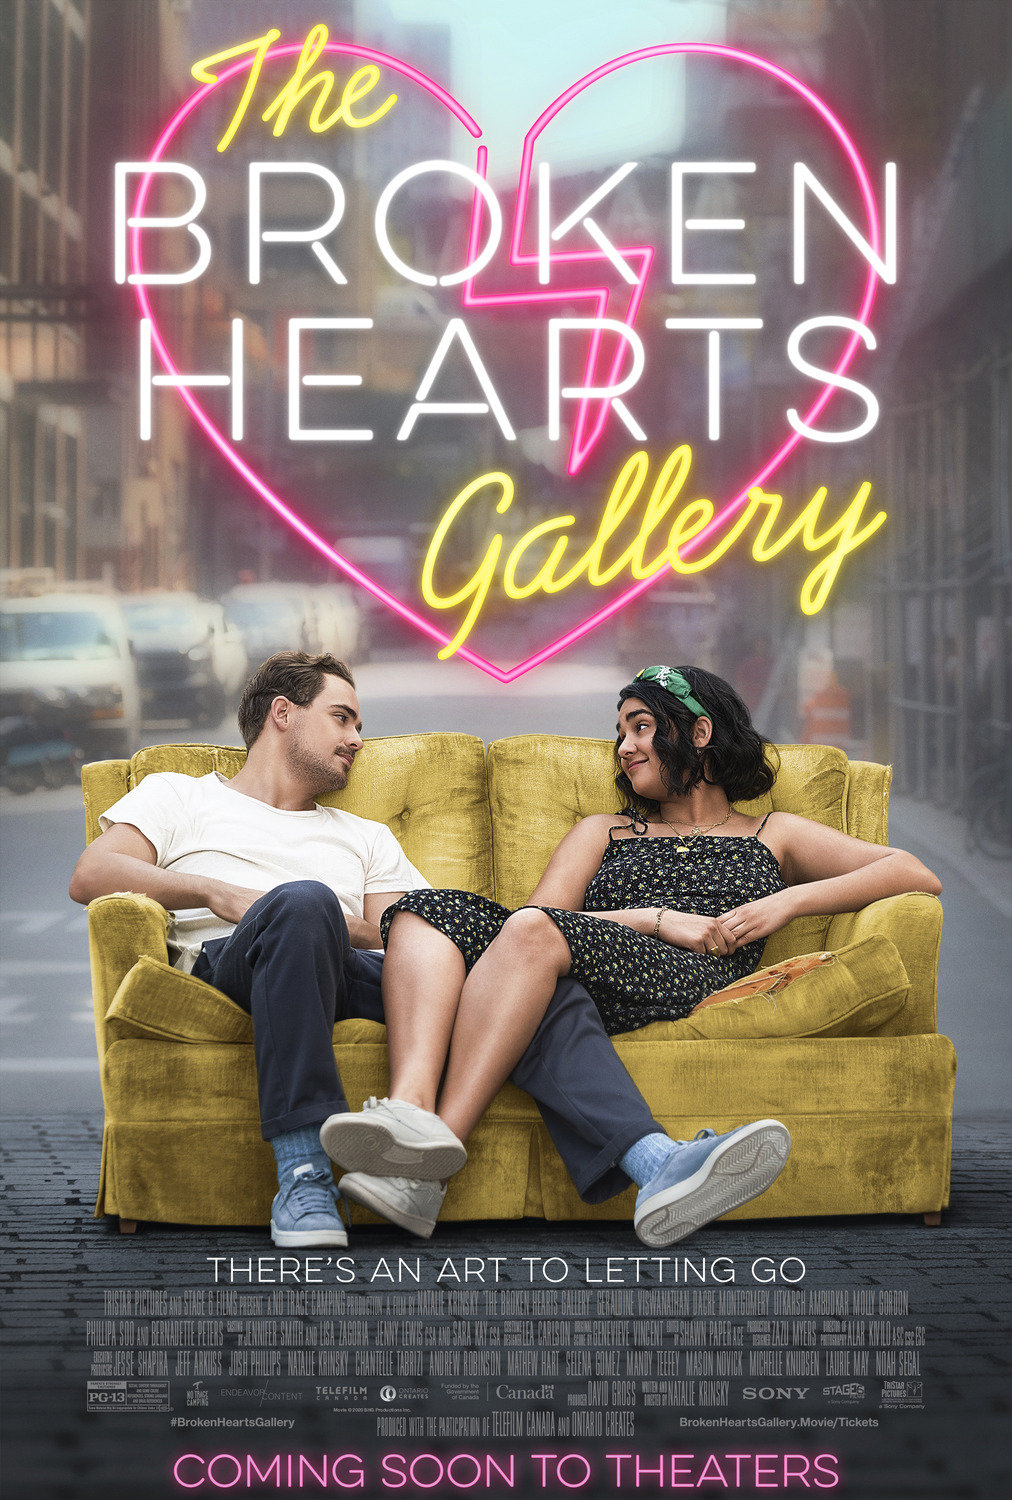 The Broken Hearts Gallery poster image